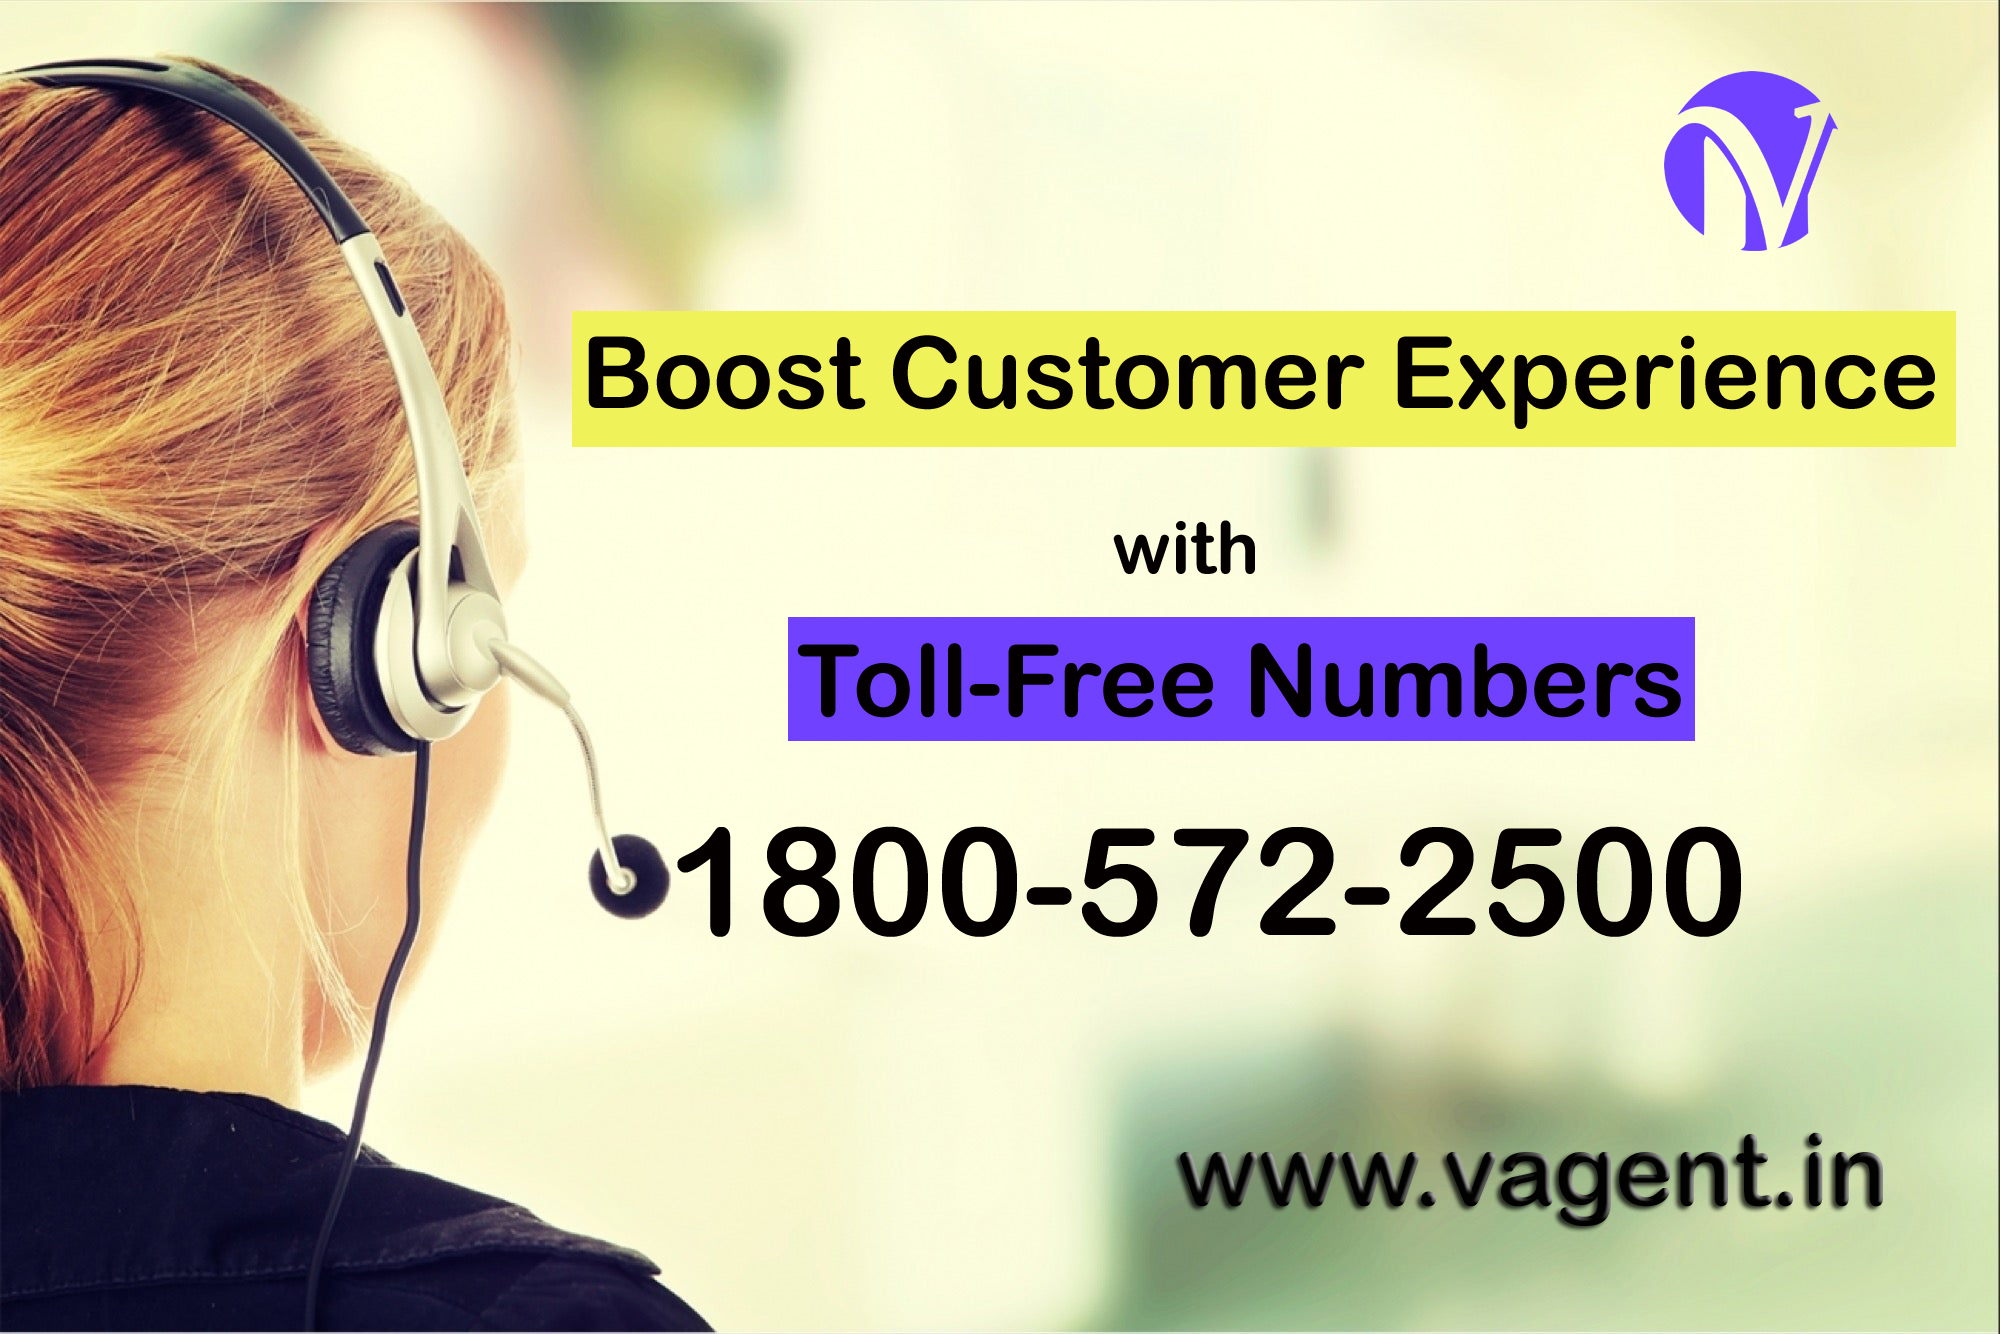 Boost Customer Experience with Toll-Free Numbers